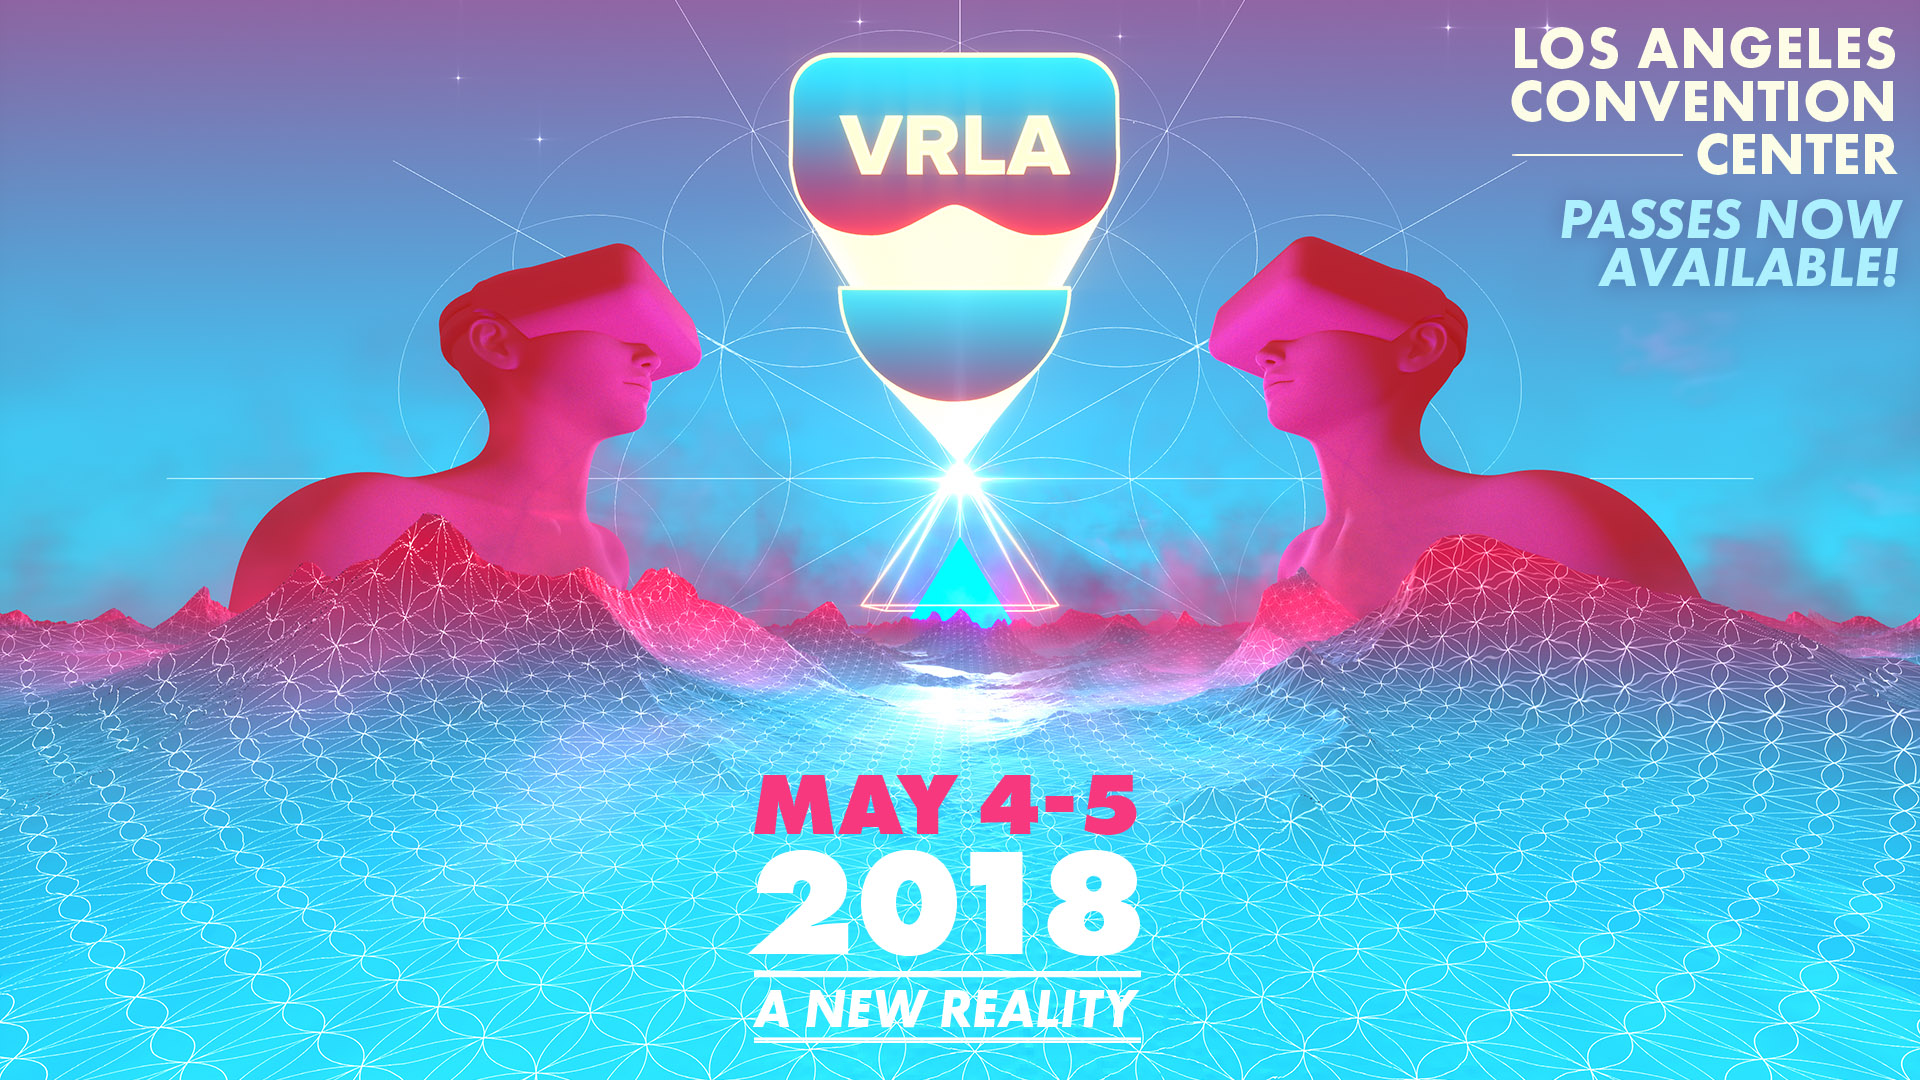 VRLA-EventFlyer-1.jpg